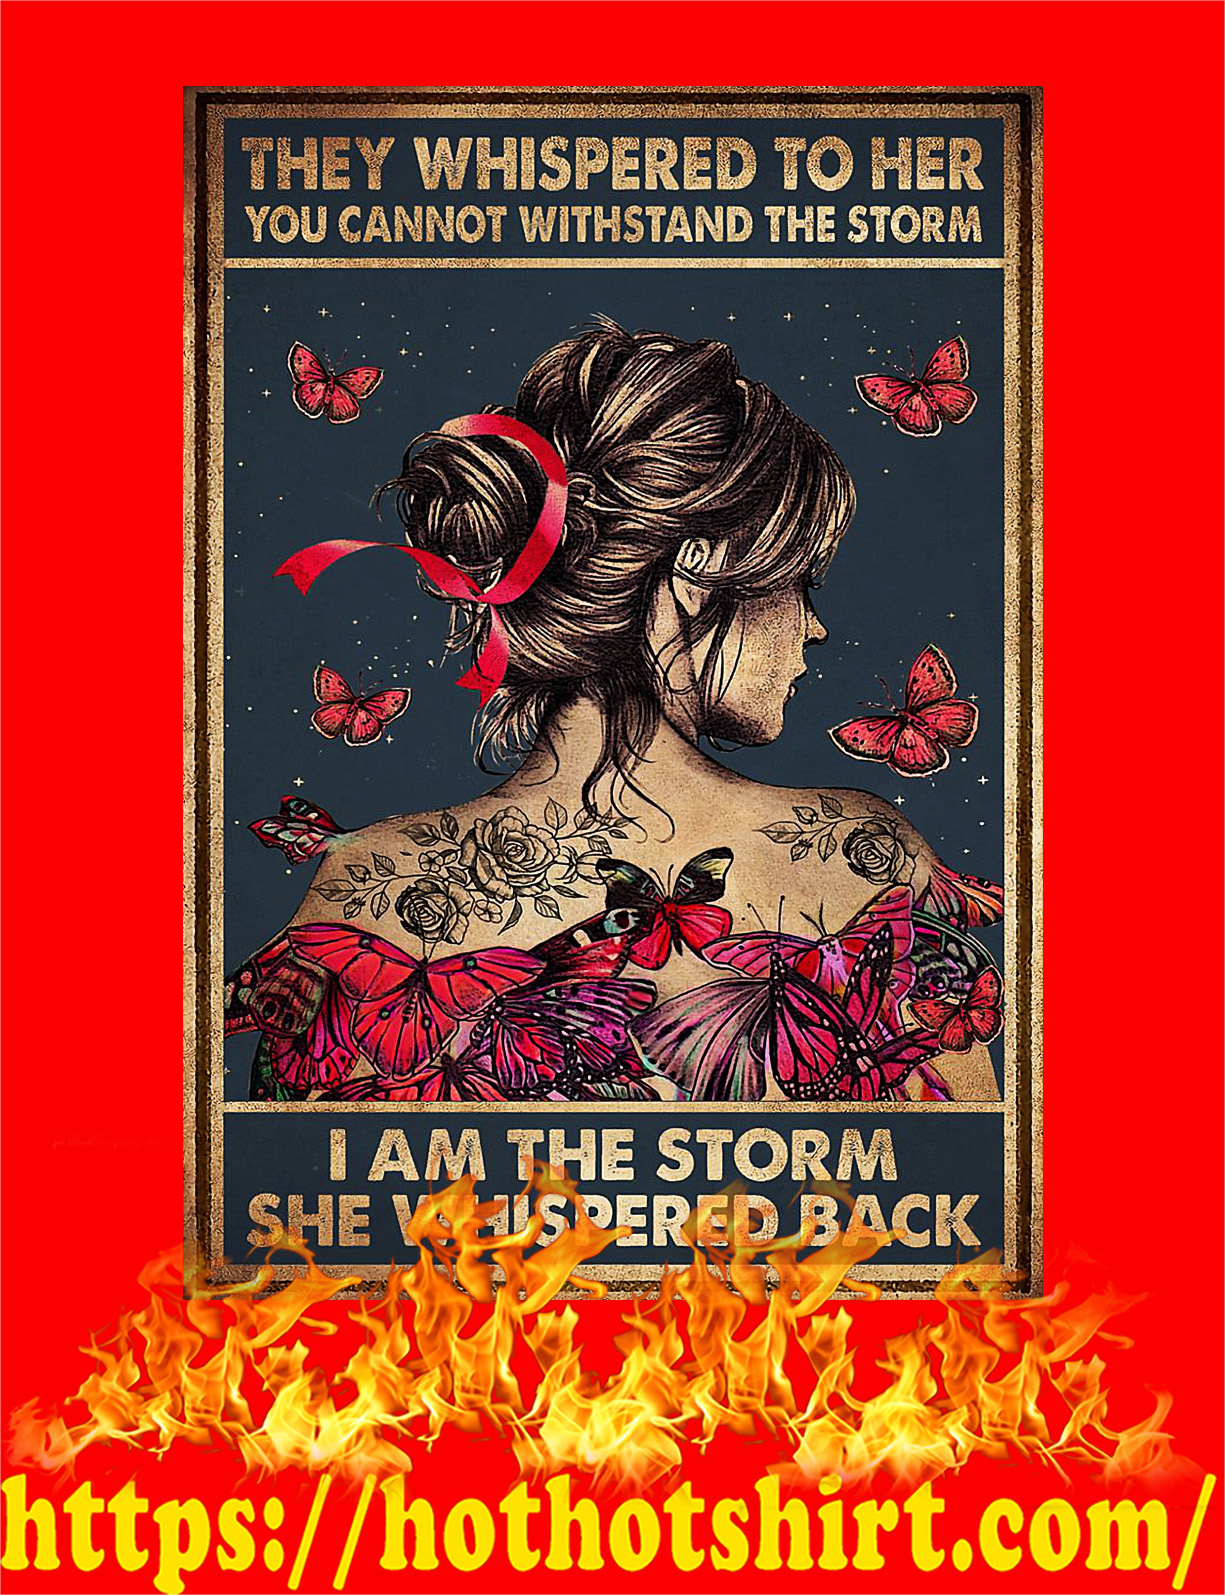 Breast cancer butterfly they whispered to her you cannot withstand the storm poster - A2